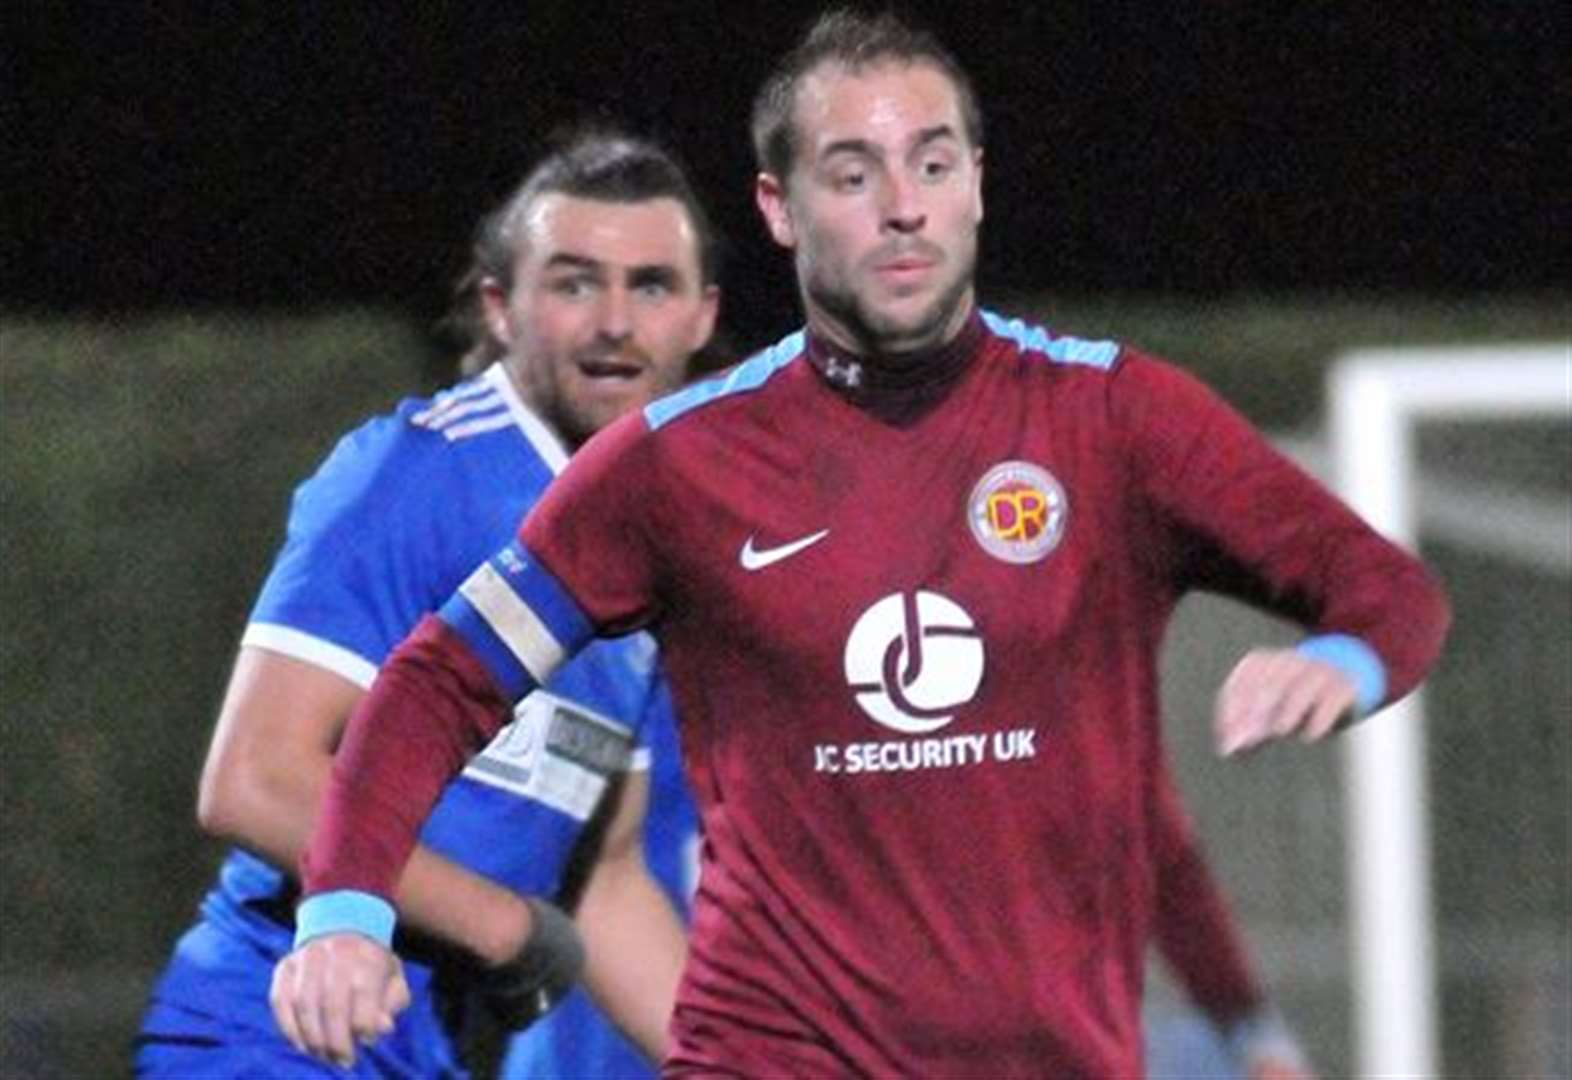 FOOTBALL: Job done as Clarets claim second place